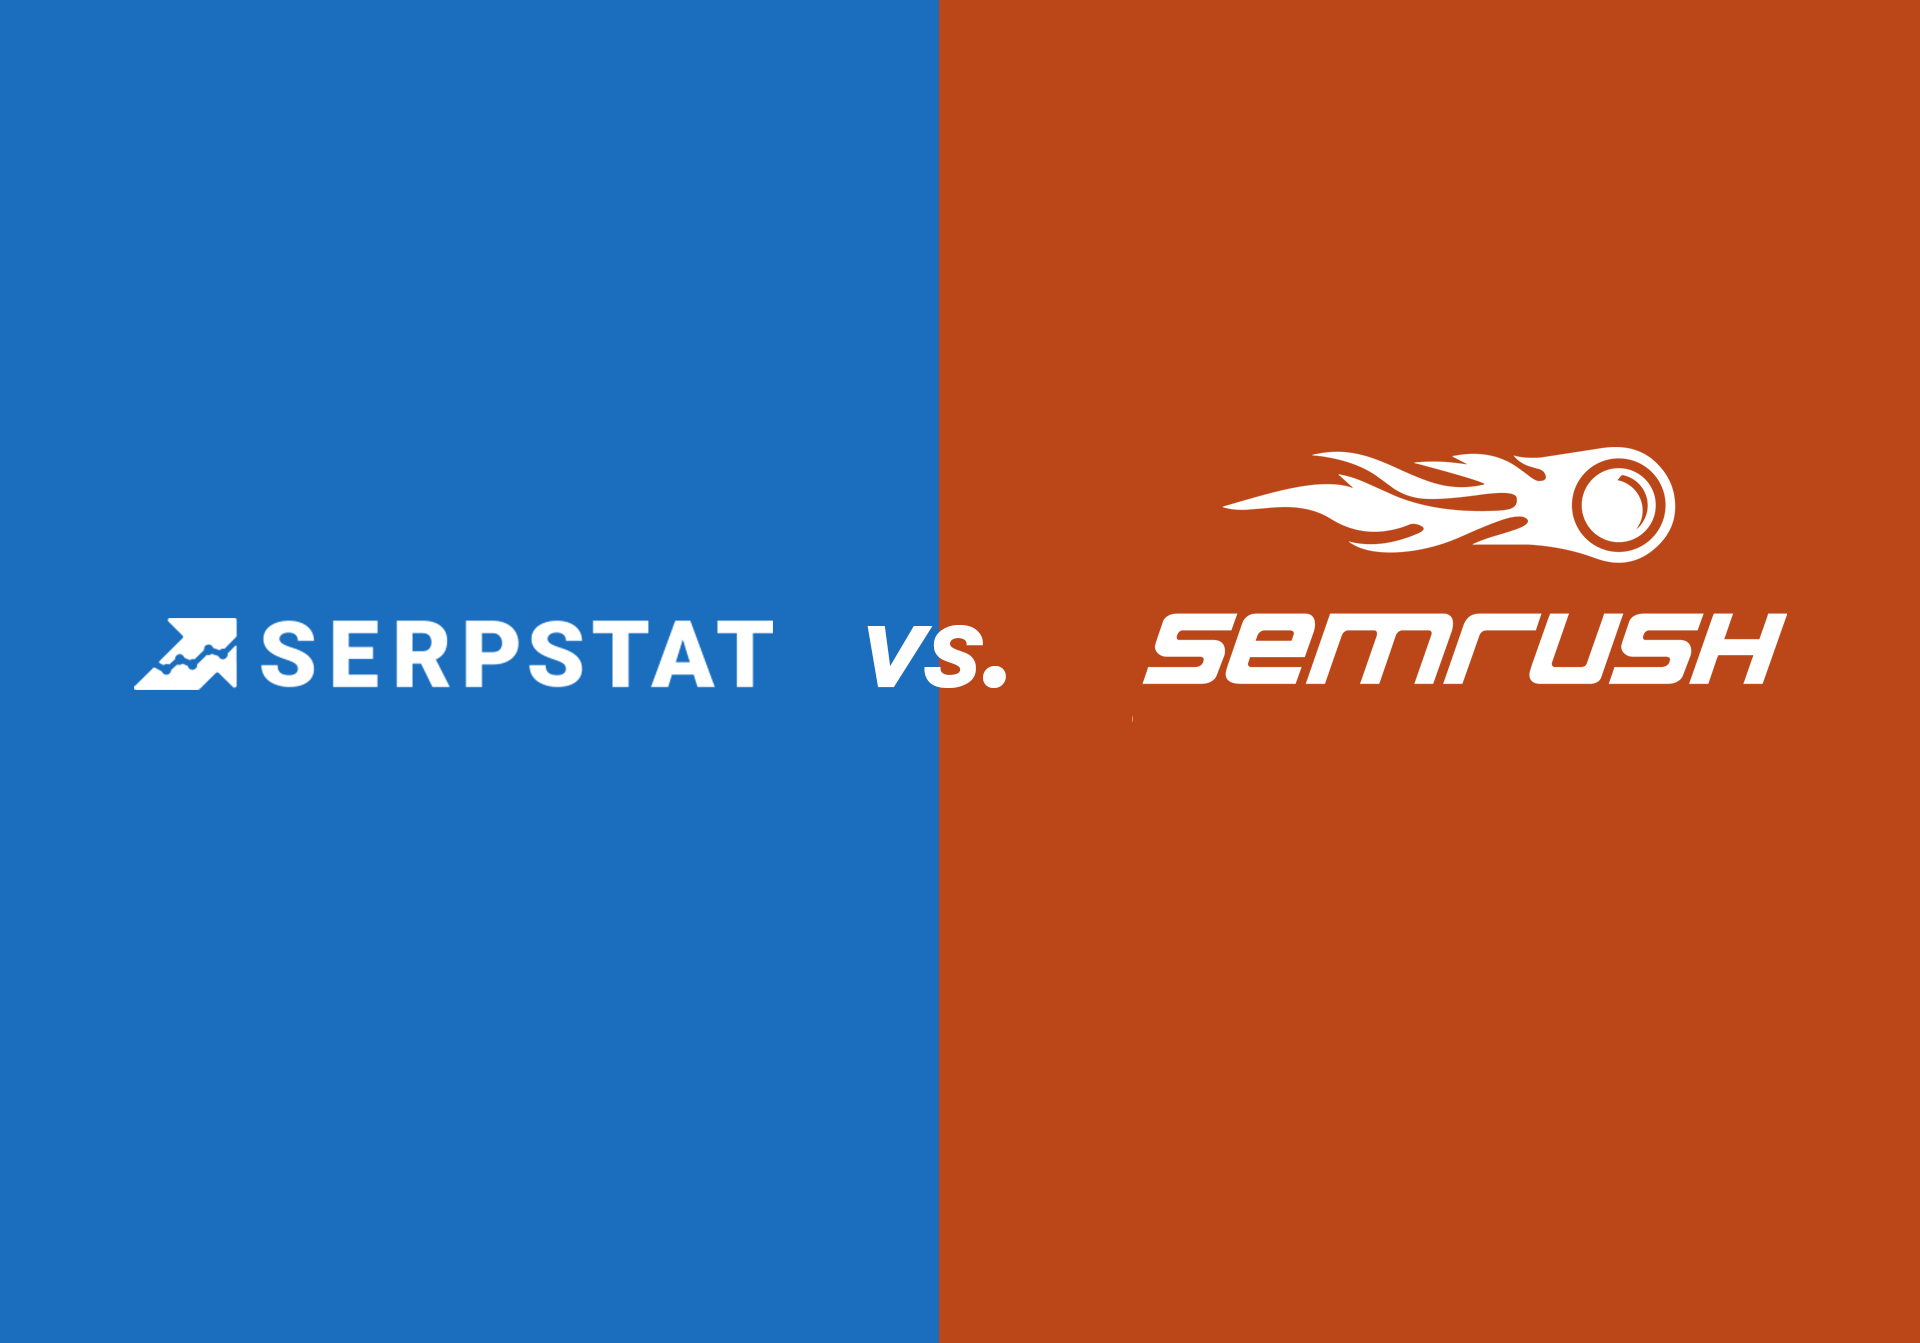 Cheap Seo Software Semrush  Price Per Month